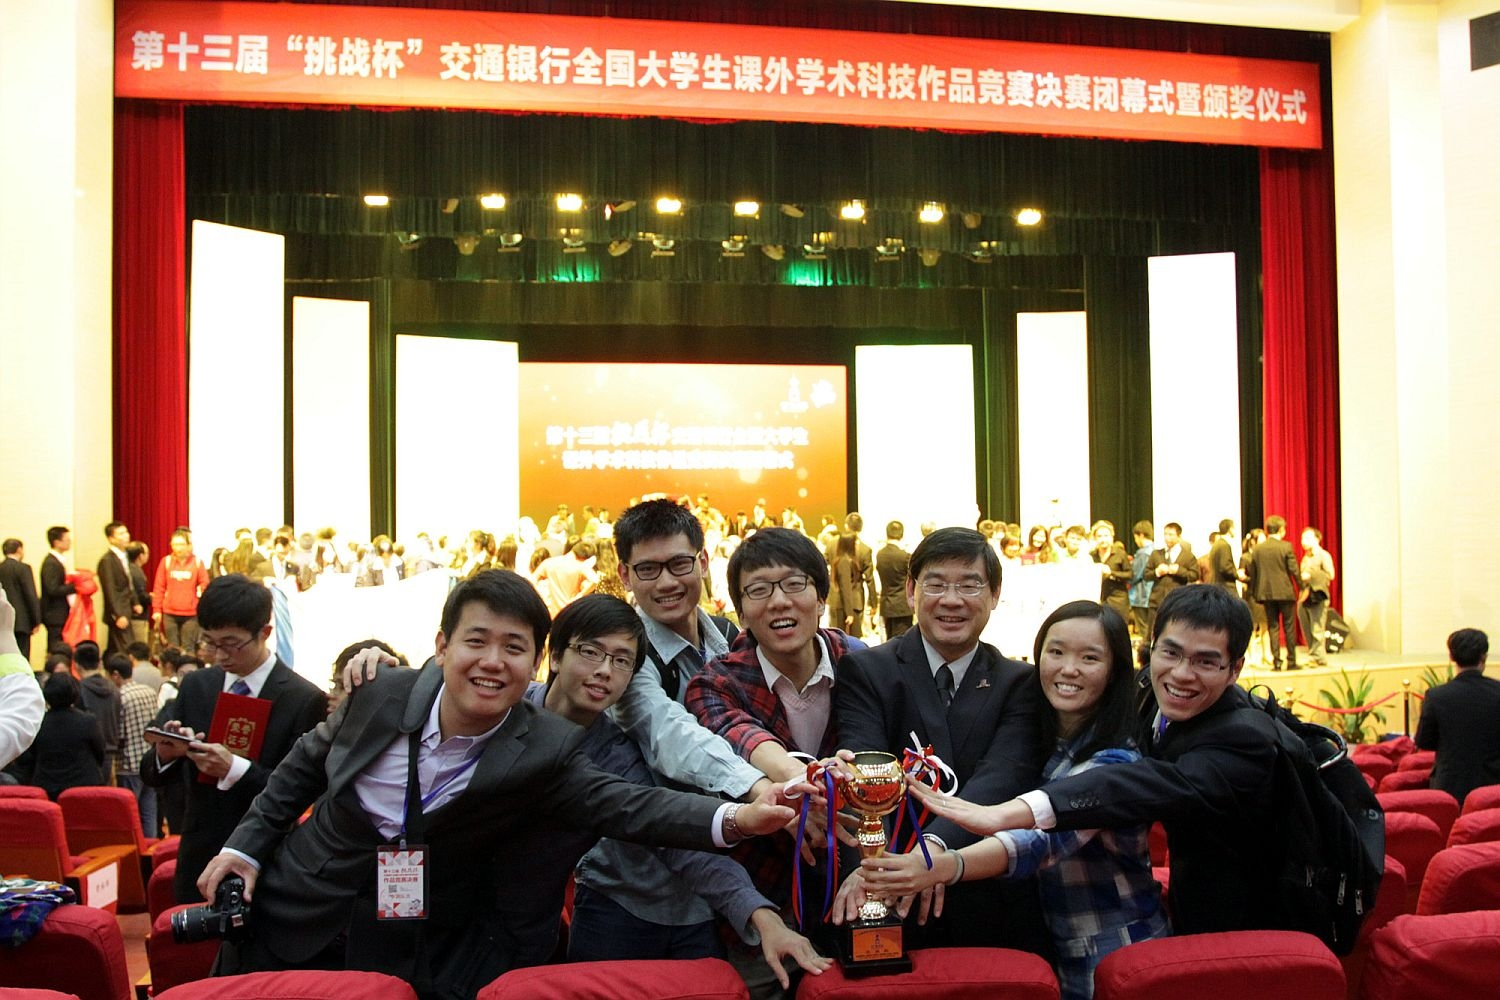 The CUHK team at the 13th Challenge Cup Competition